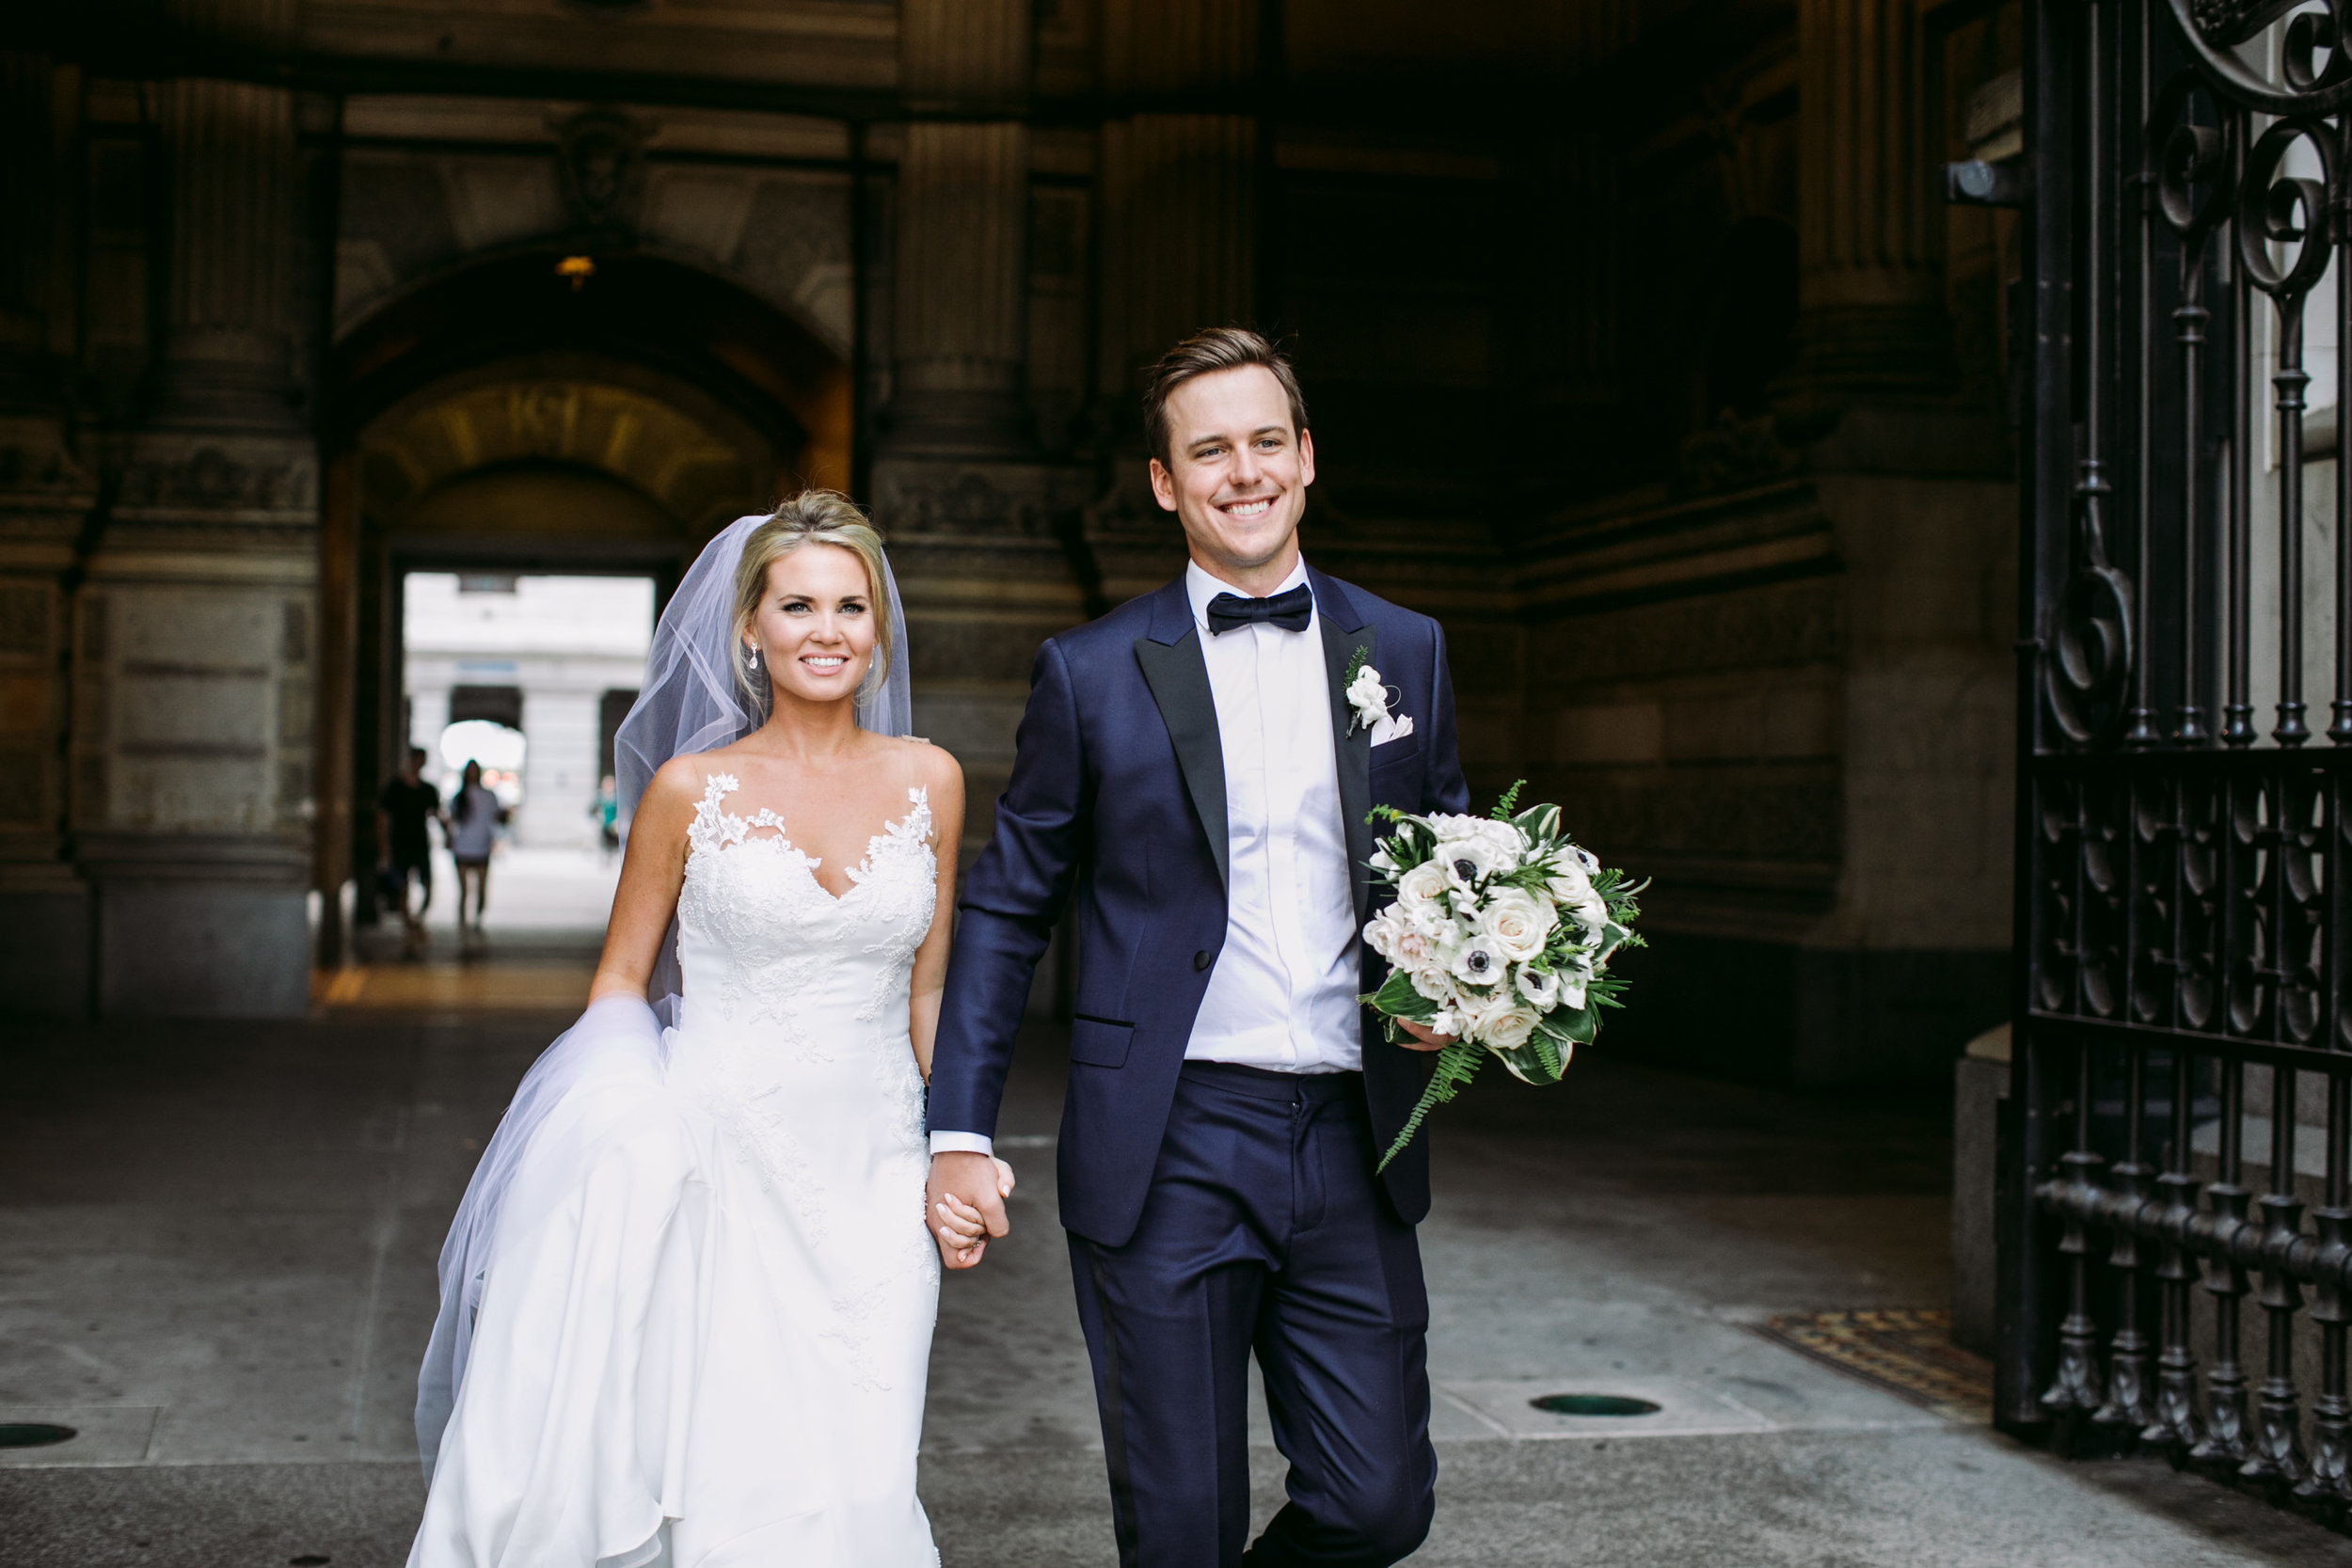 photography-wedding-weddings-natural-candid-union league-philadelphia-black tie-city hall-broad street-editorial-modern-fine-art-18.JPG